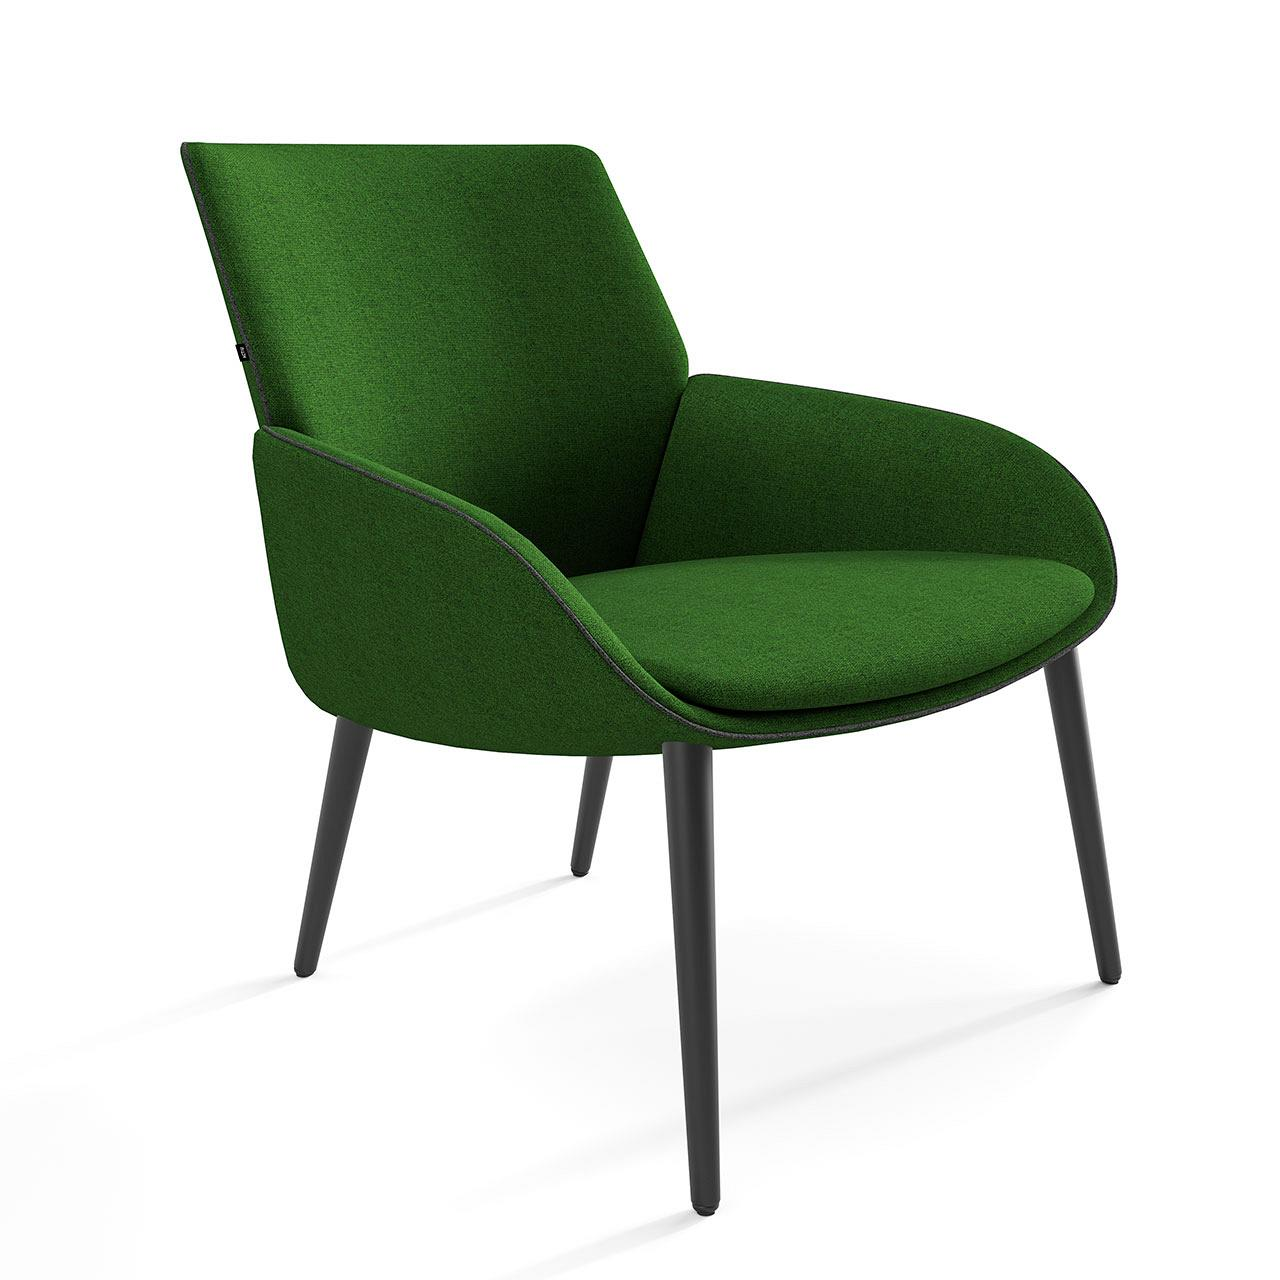 Actiu Noom 10 4 Point Wood Upholstered Green Chair